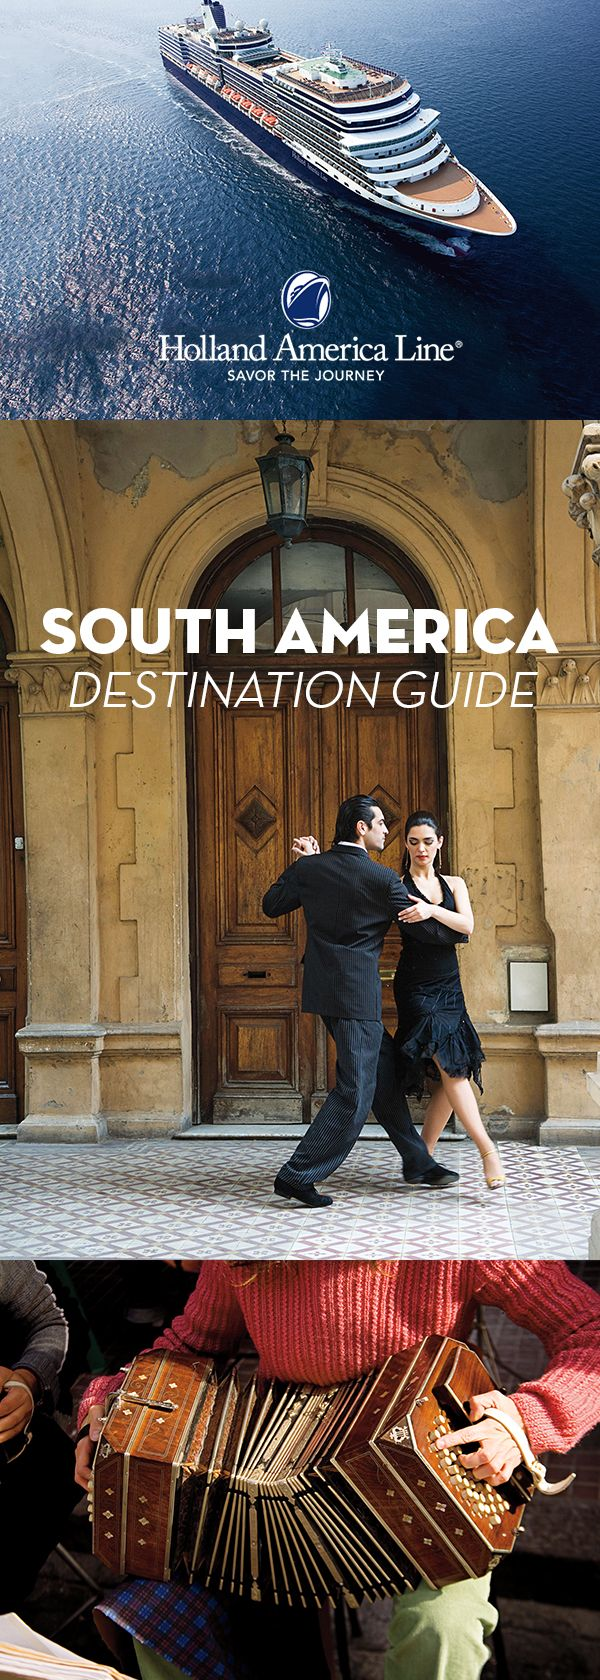 A must-add for your travel board: our South America destination guide. A journey in South America is enhanced by a Holland America Line cruise. We visit all the must-see destinations: Machu Picchu, Valparaíso, glaciers in Antarctica, the Strait of Magellan, Buenos Aires, Rio de Janeiro and more. Our travel guide and port planner will help you map out the perfect itinerary for a South American adventure.